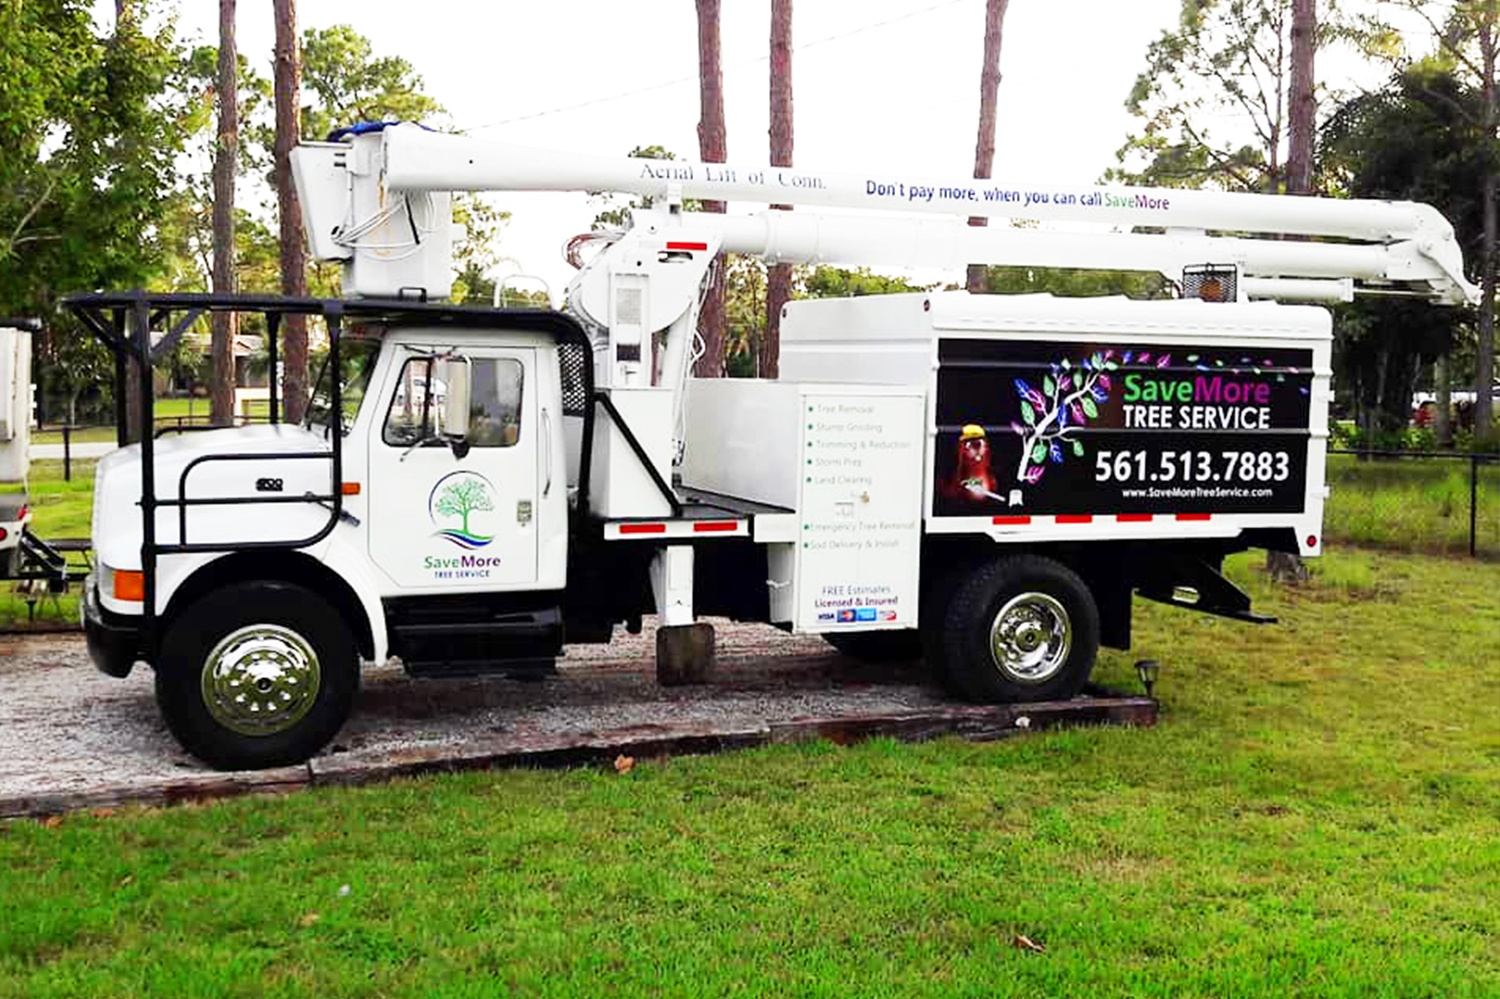 SaveMore Tree Service - Loxahatchee, Florida